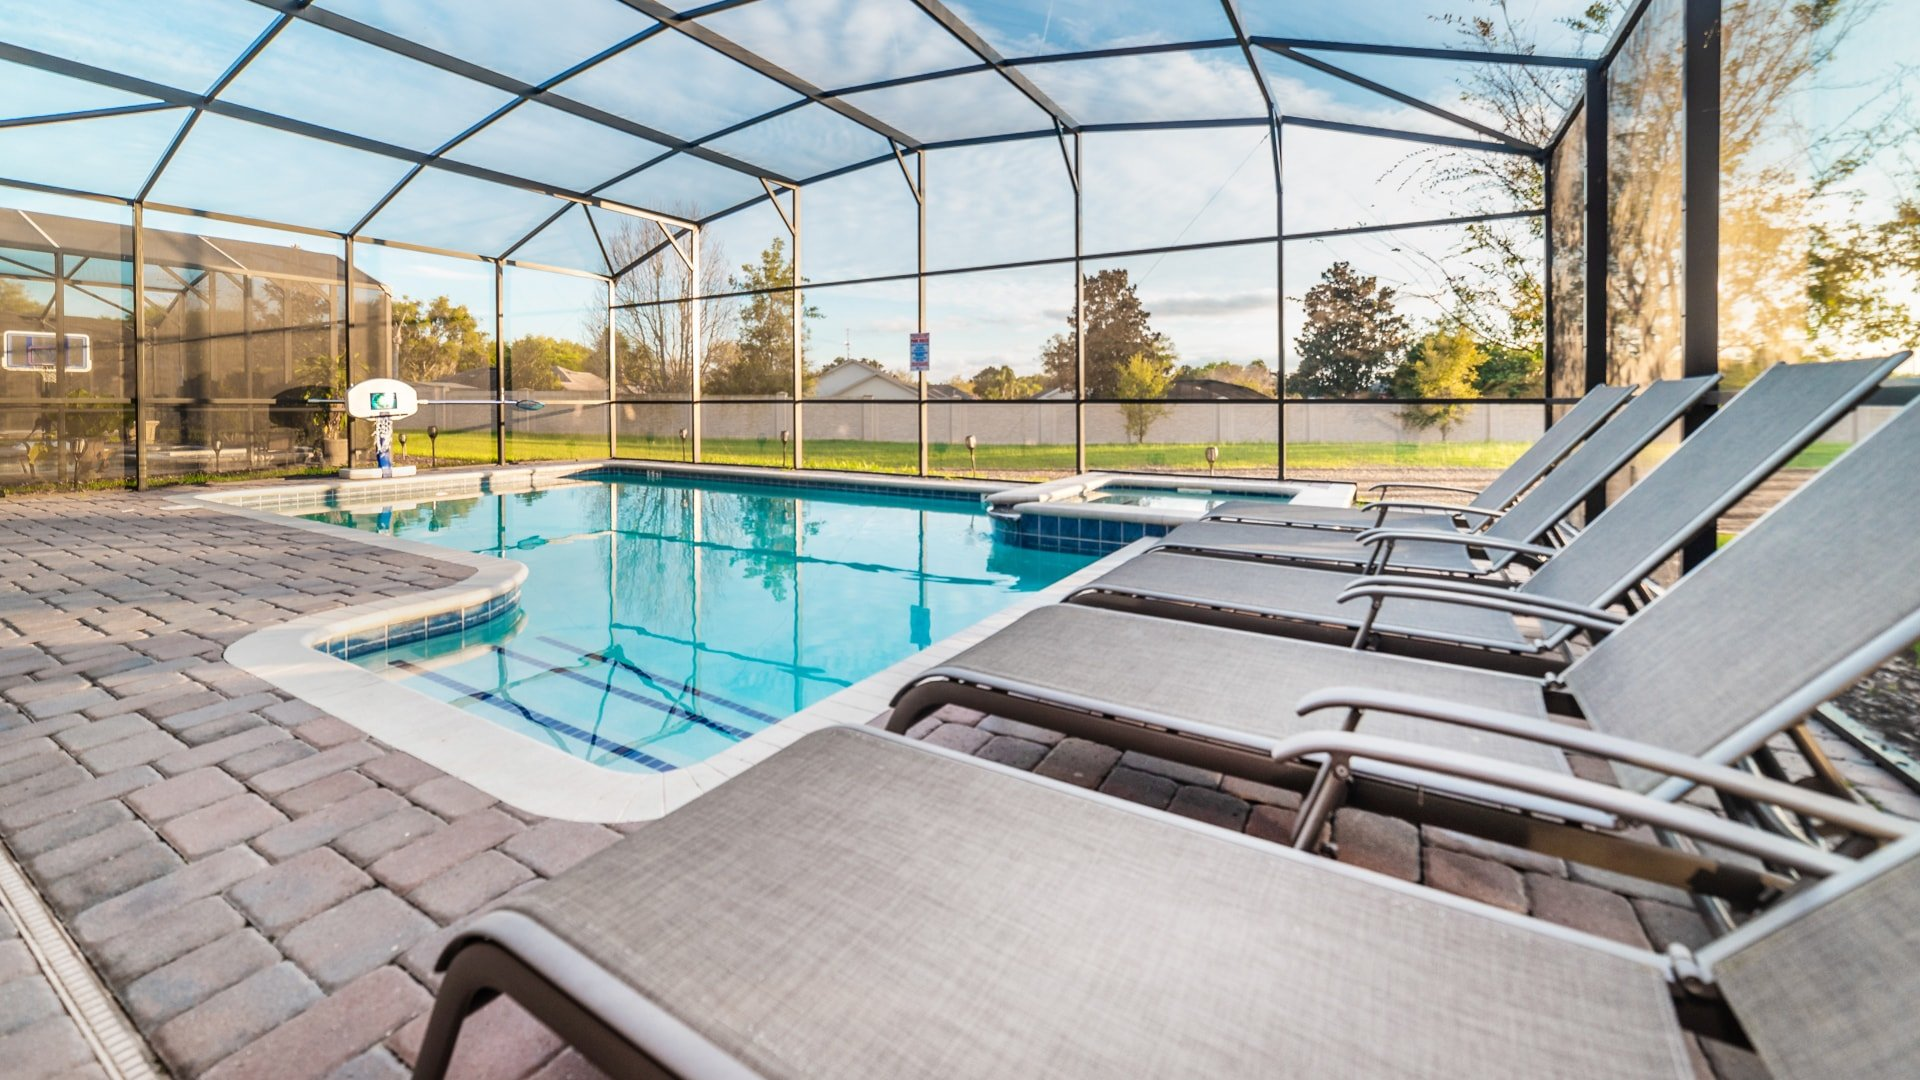 1492 Moon Valley Drive-209862